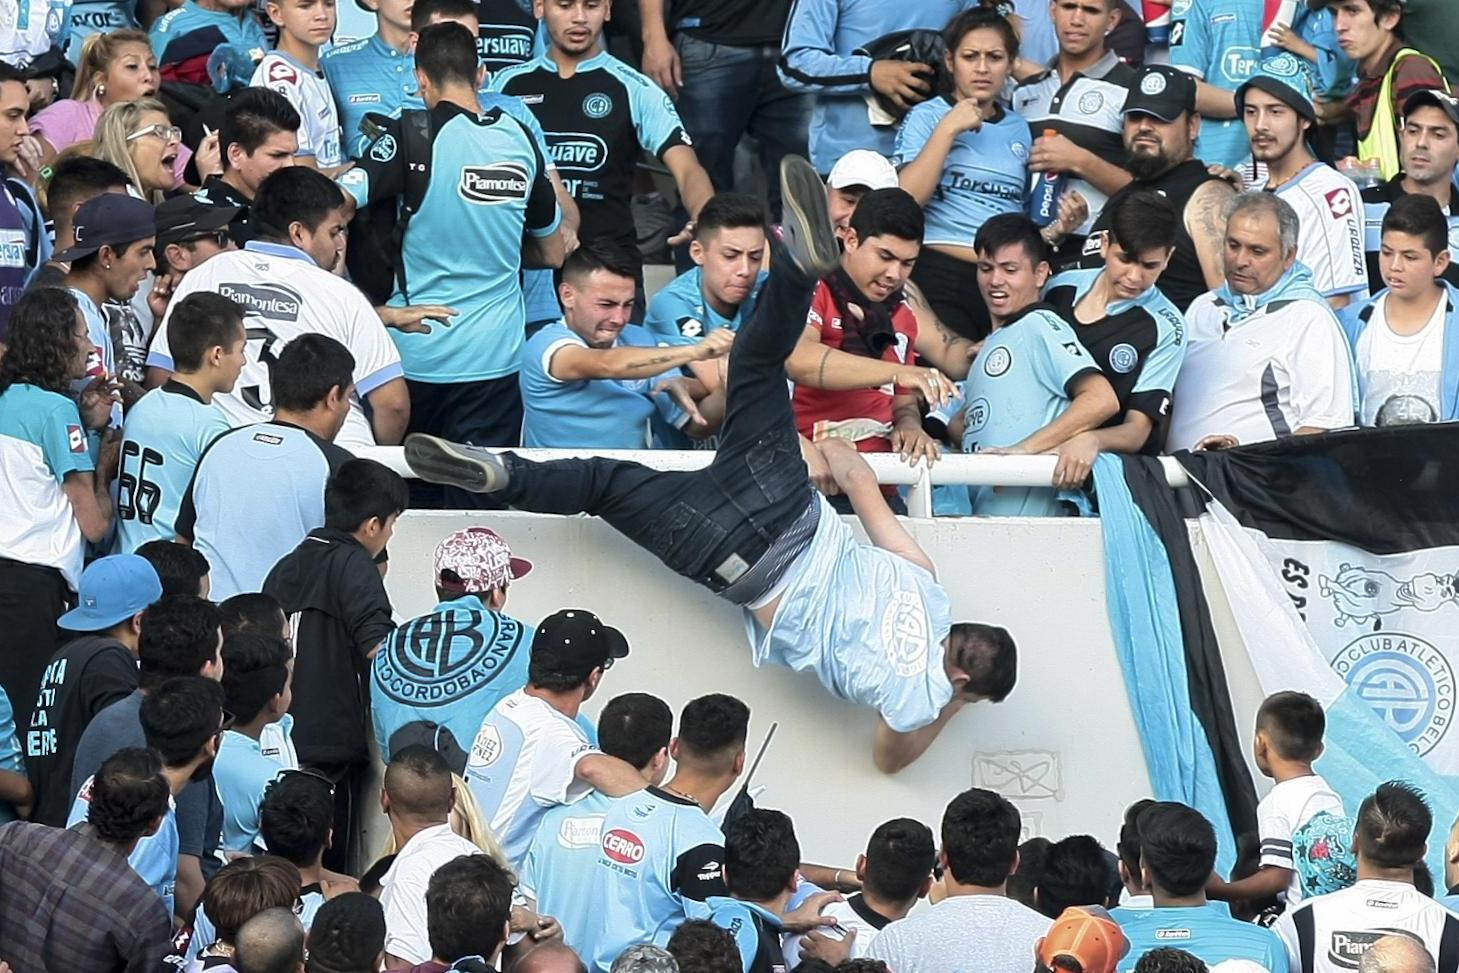 Man dies after Argentina football crowd pushed him off stand mistaking him for rival fan